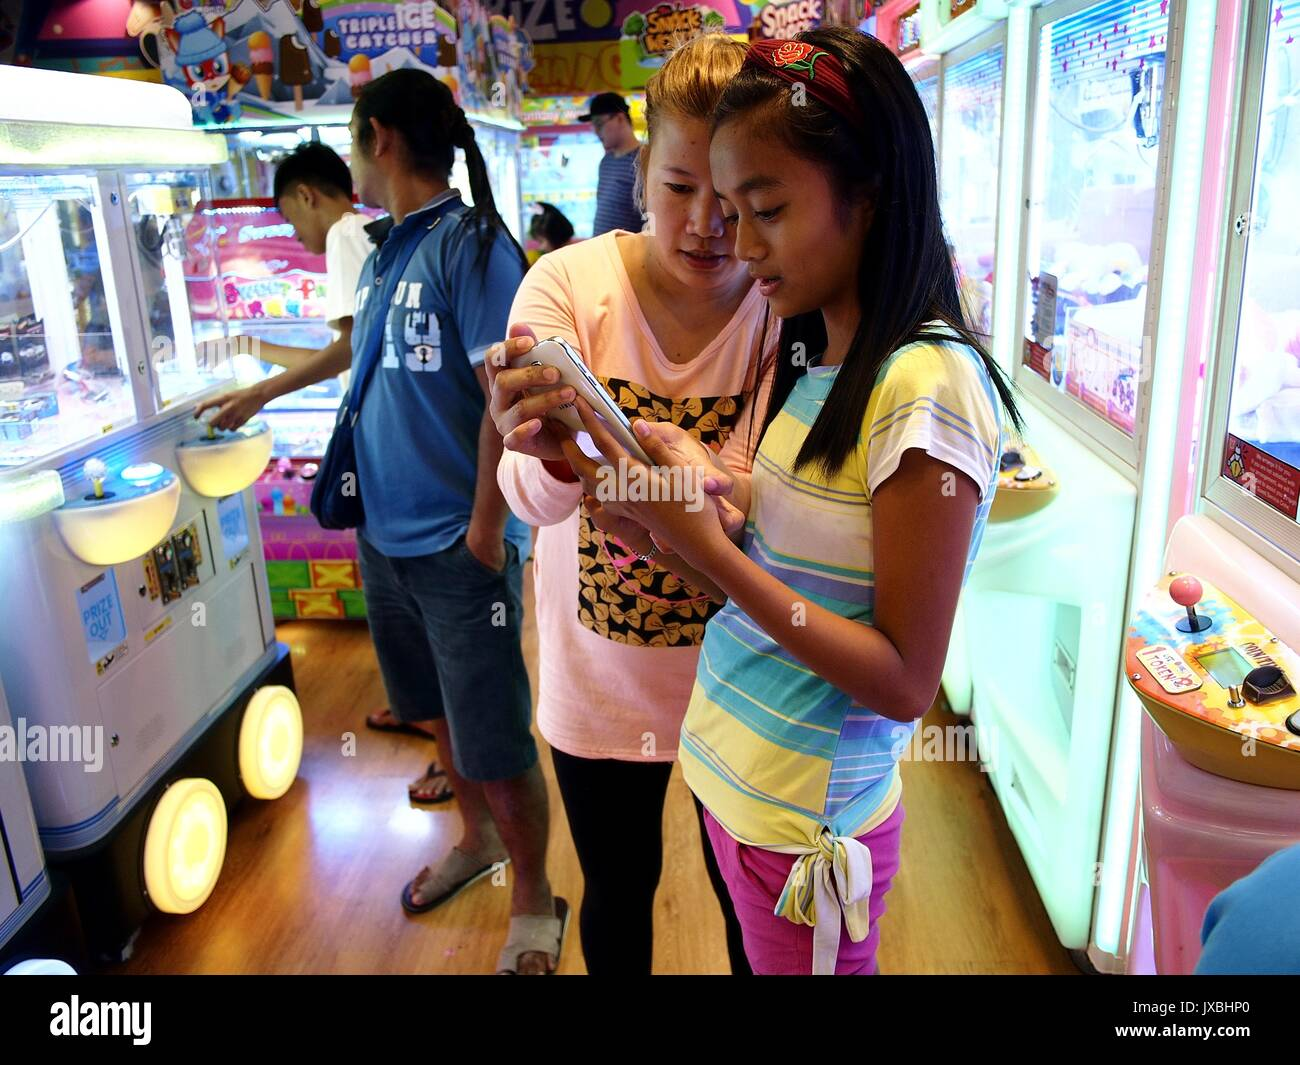 ANTIPOLO CITY, PHILIPPINES - AUGUST 13, 2017: Customers enjoy the different attractions inside an amusement arcade. - Stock Image